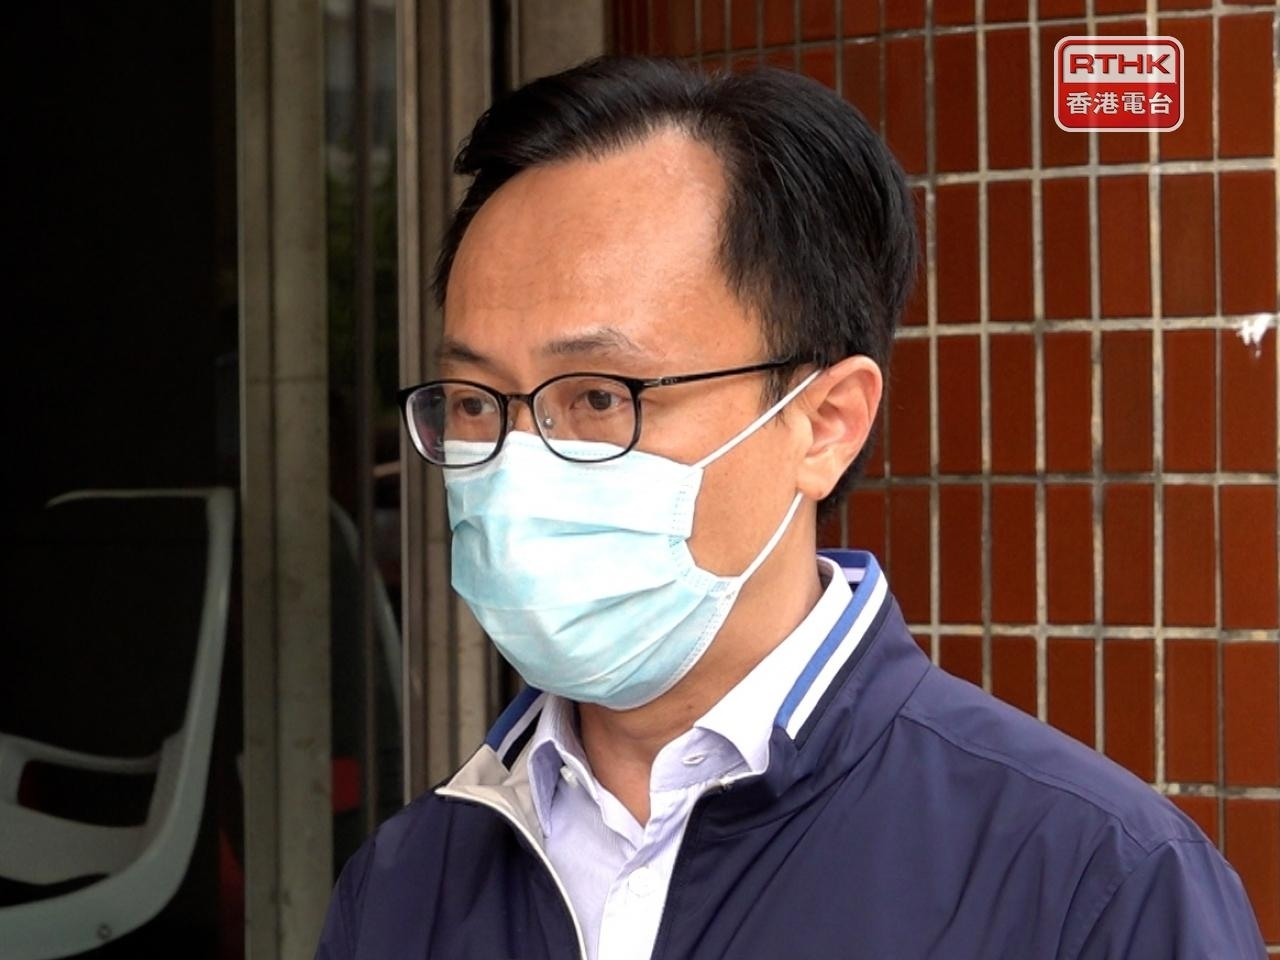 Patrick Nip says the government will deploy outreach workers to boost vaccine take-up among the elderly. Photo: RTHK